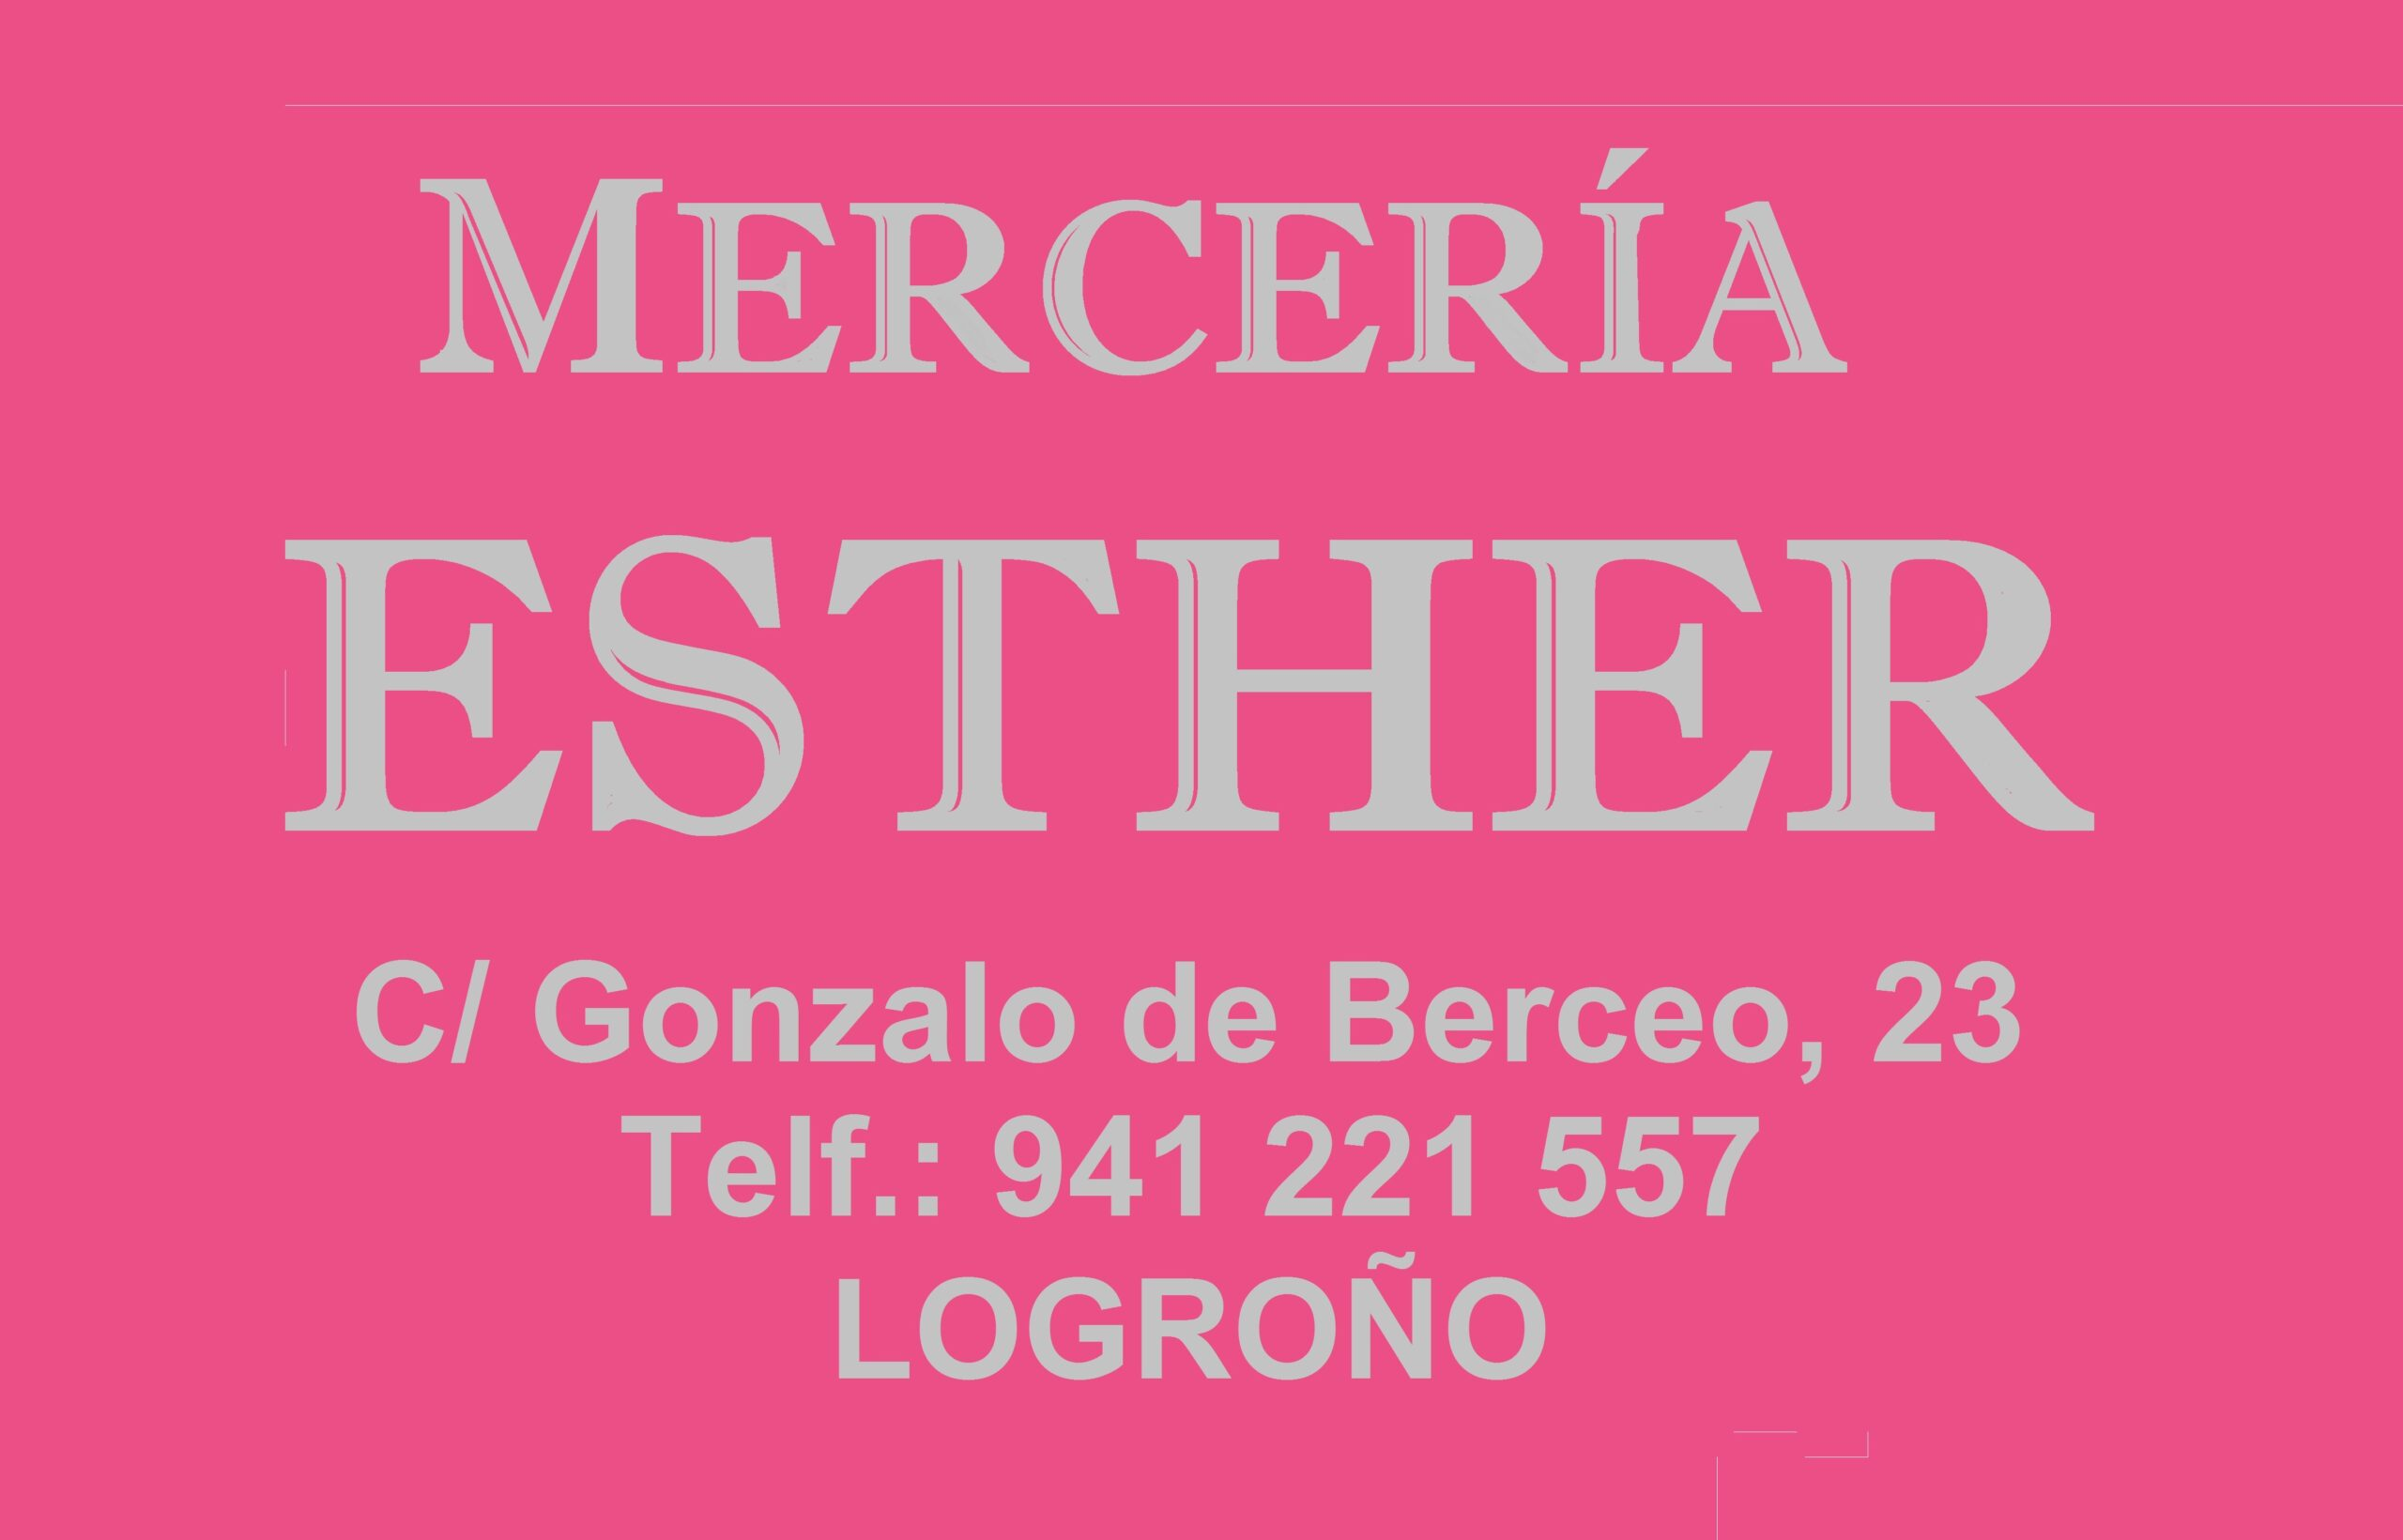 mercerias-en-logrono-esther